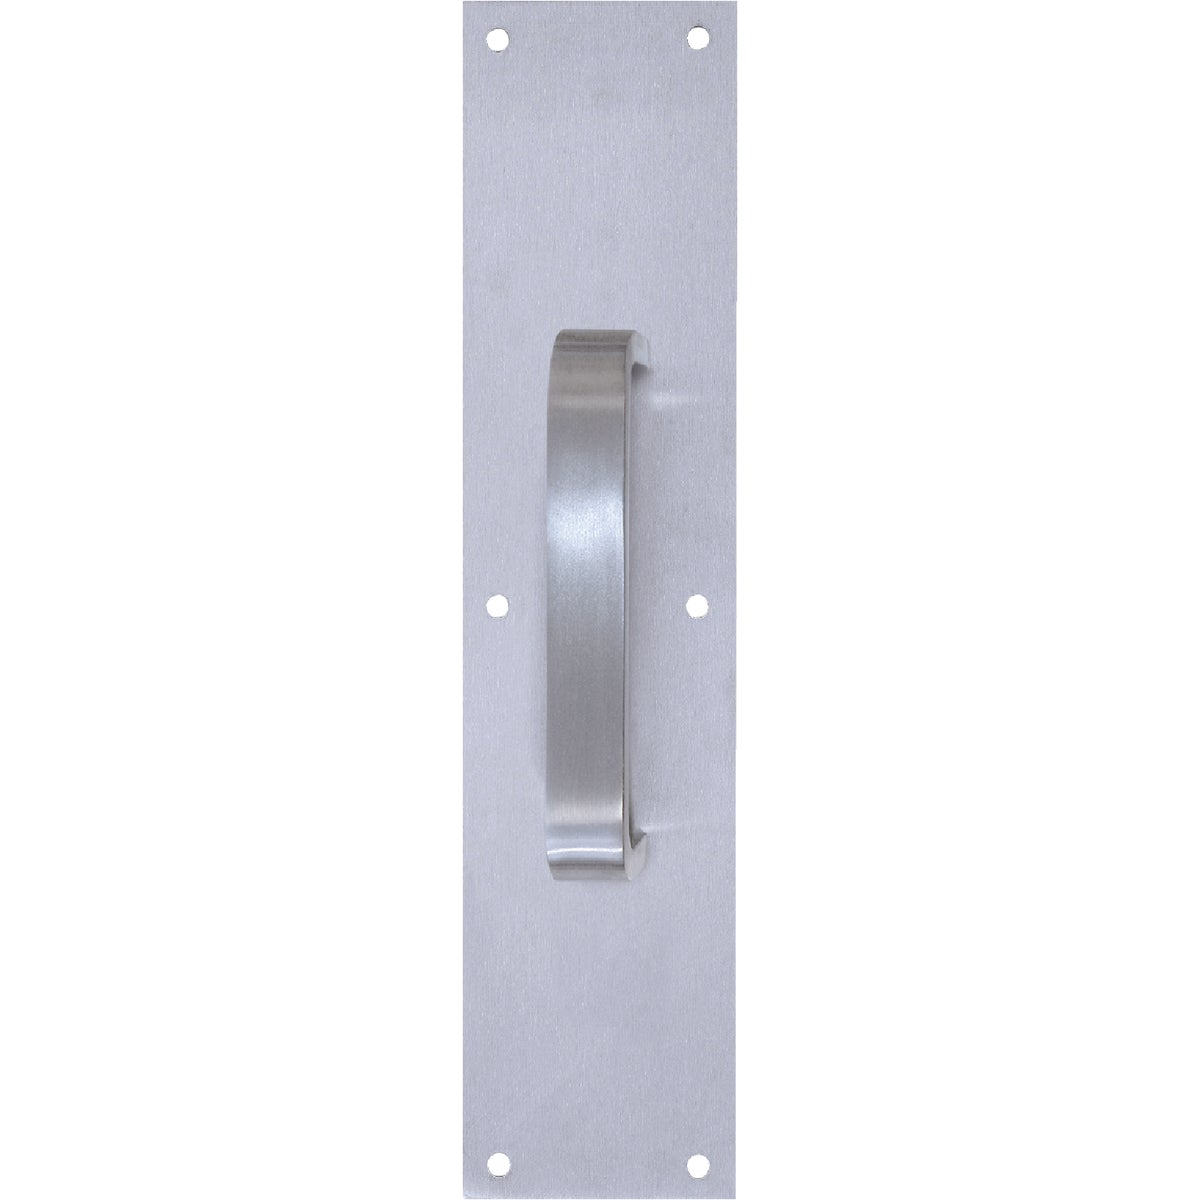 3.5X15 28 Pull Plate